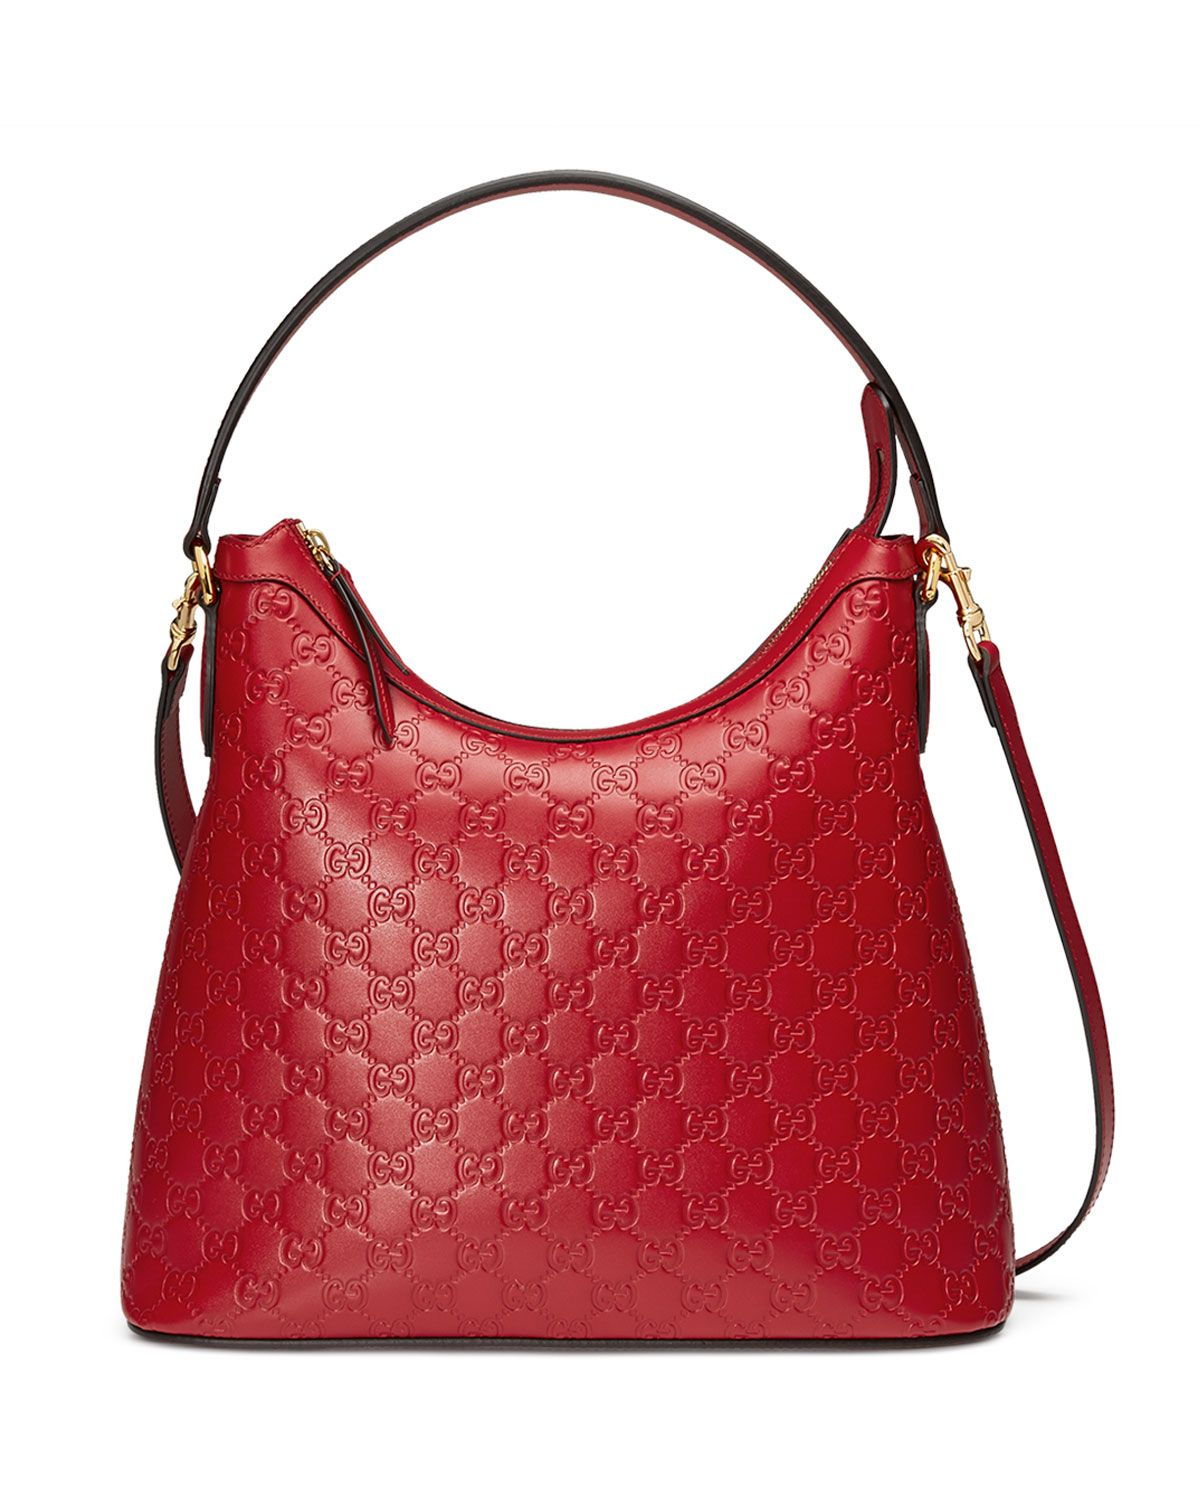 45933ebf4 Guccissima Medium Hobo Bag Red | *Handbags, Wallets & Cases ...